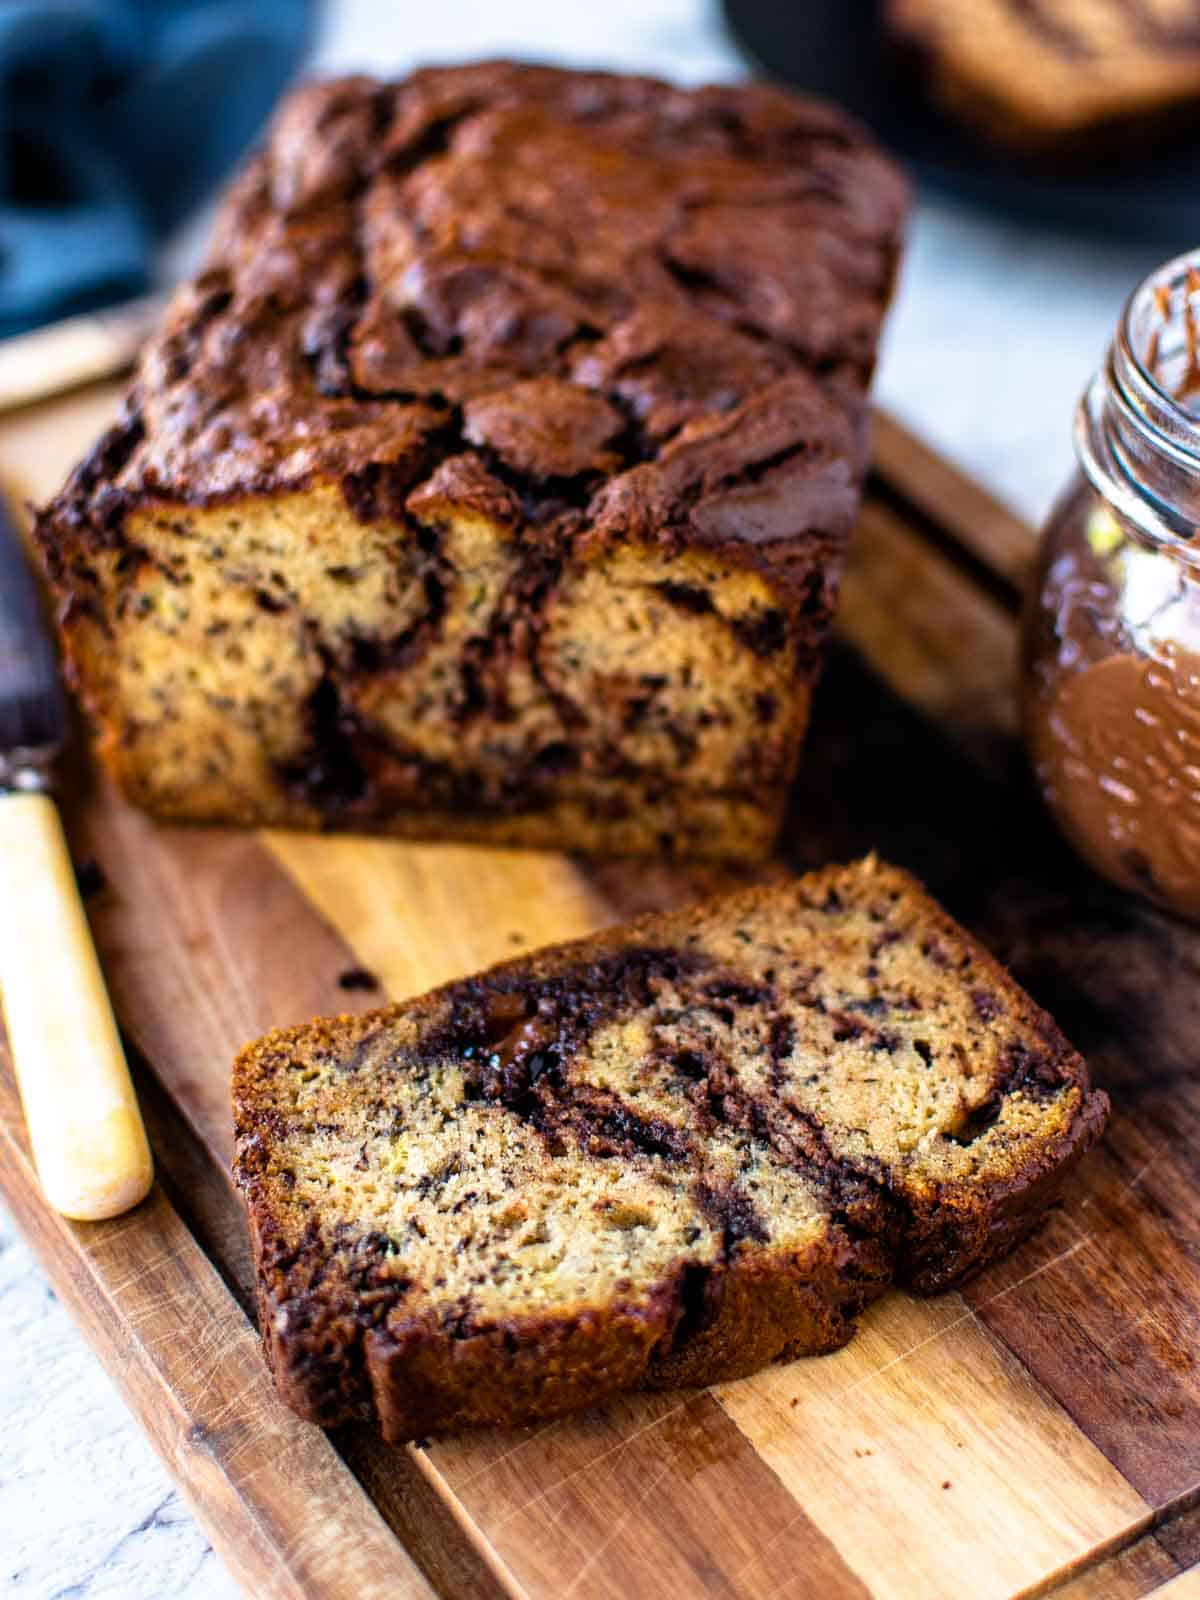 Several slices of baked banana bread with swirls of nutella running through them on a wooden board.